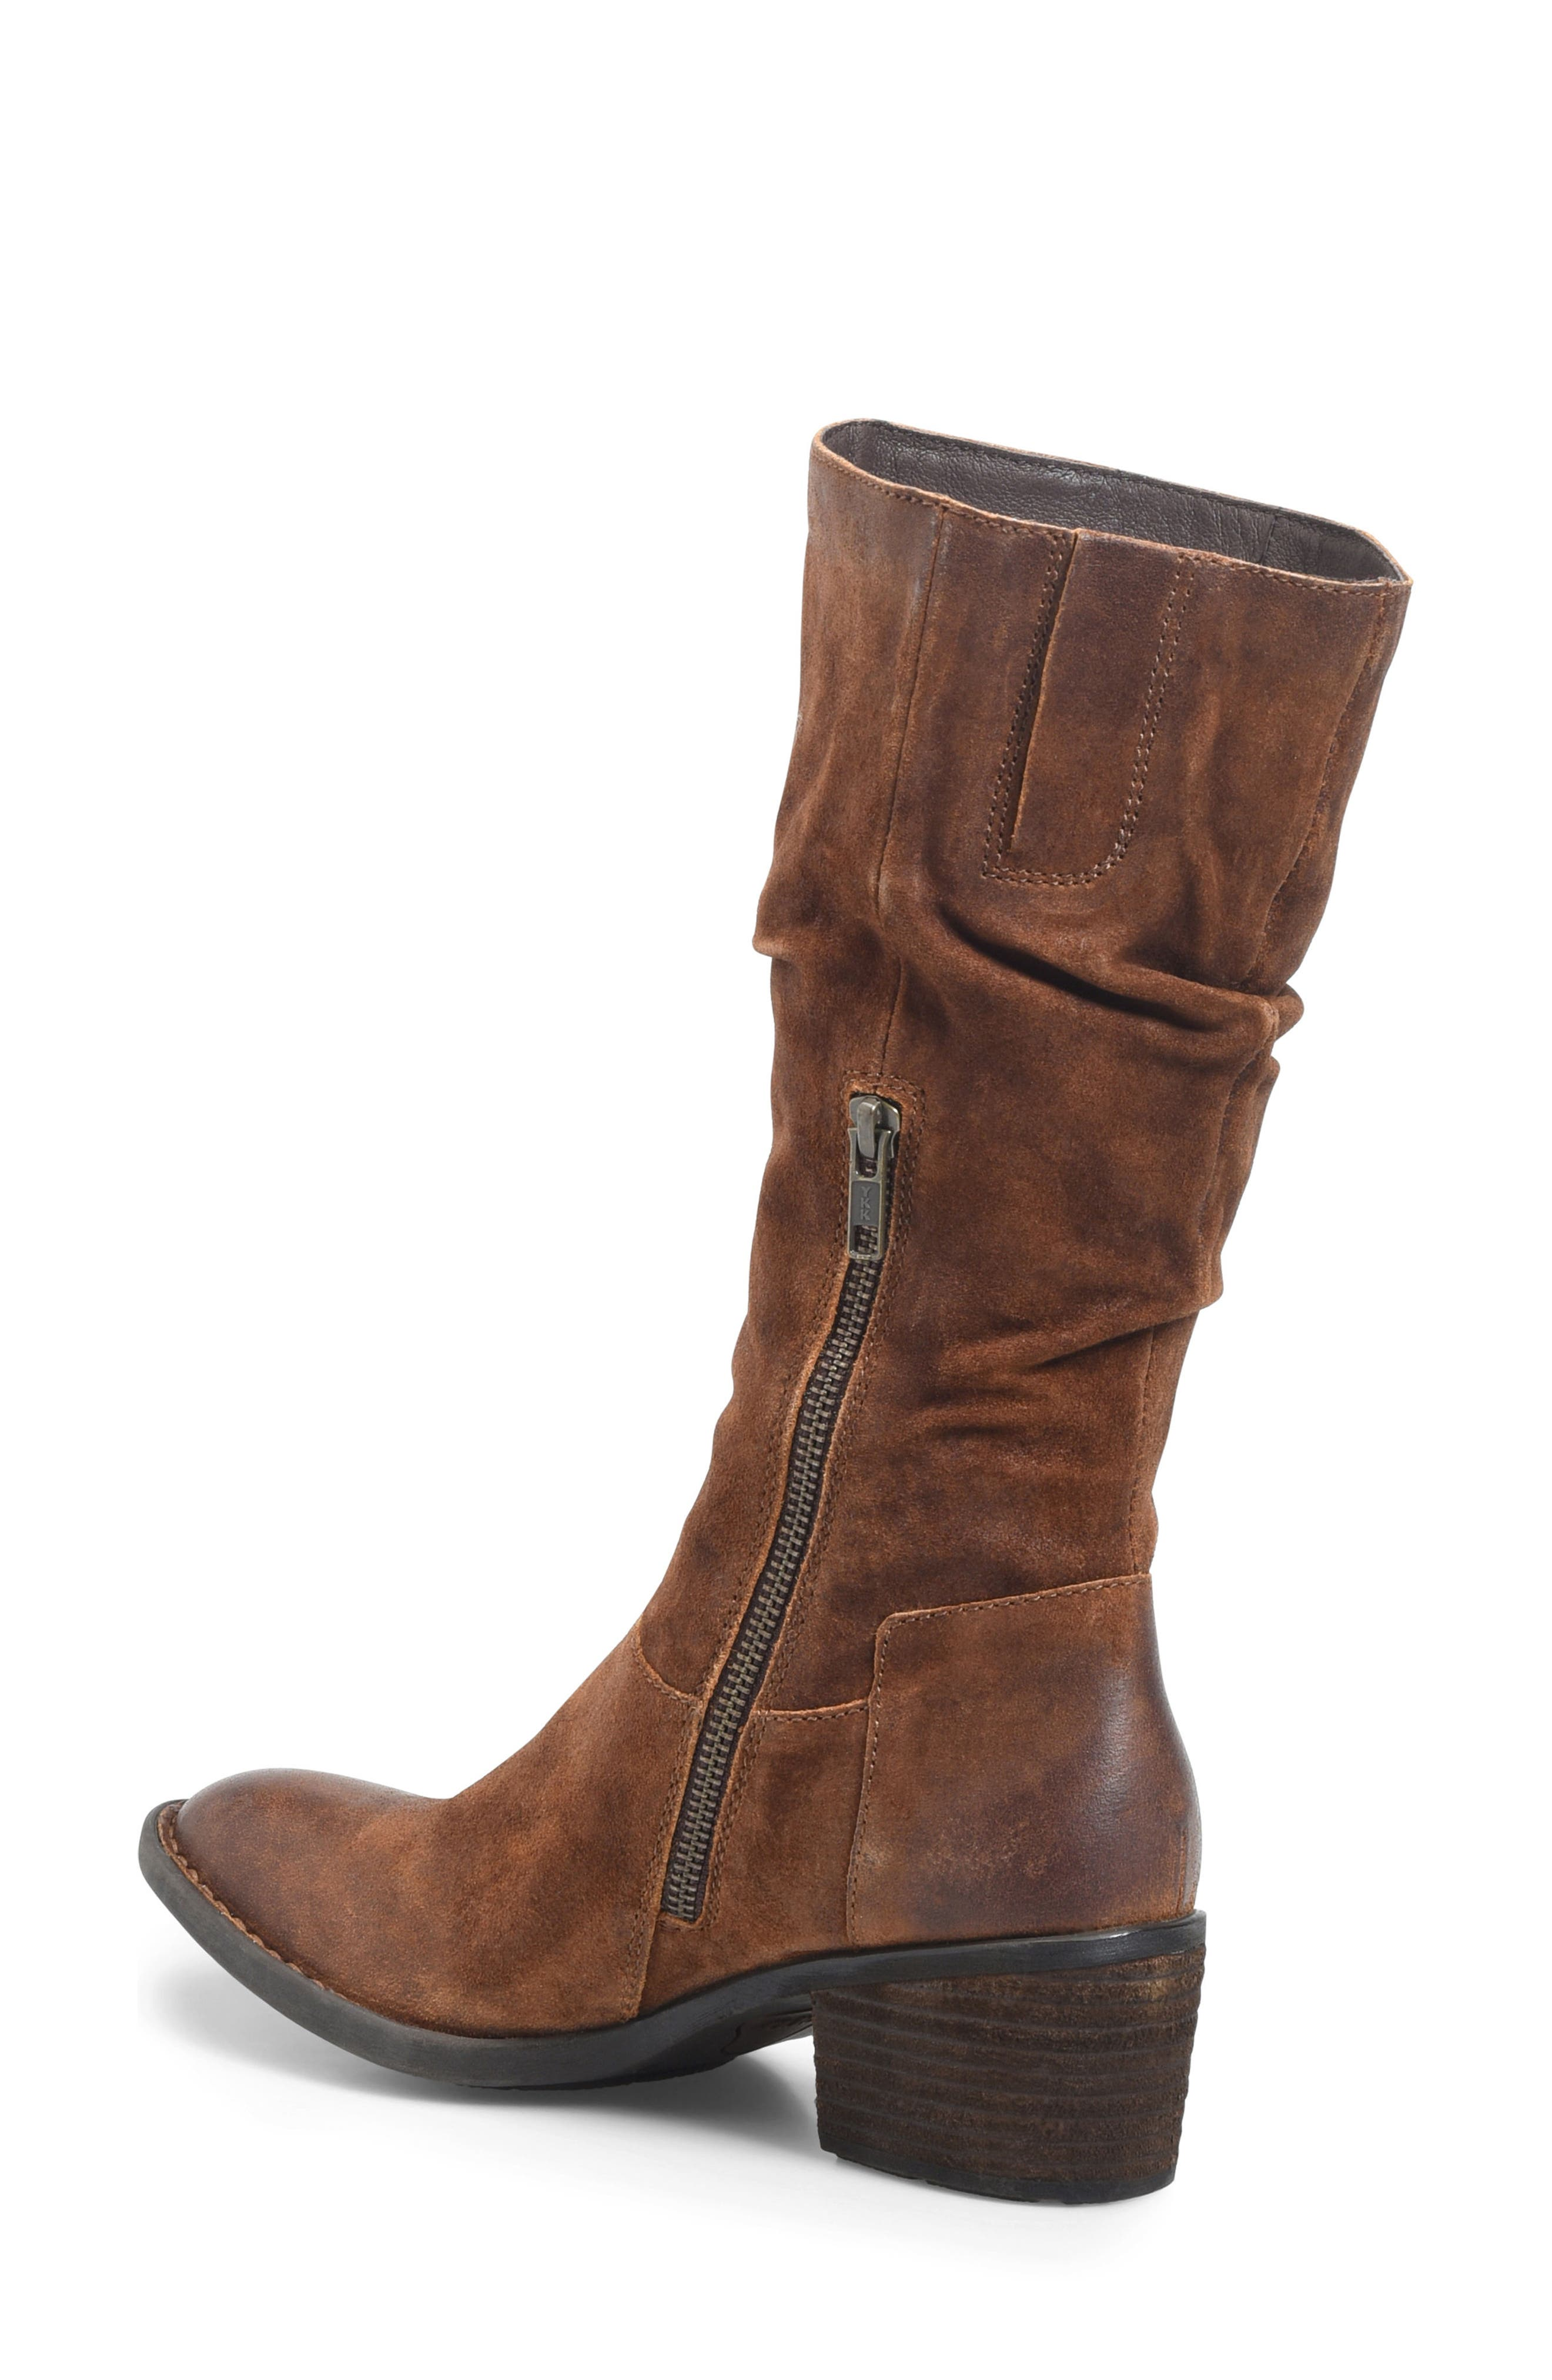 Peavy Slouch Boot,                             Alternate thumbnail 2, color,                             Rust Distressed Leather